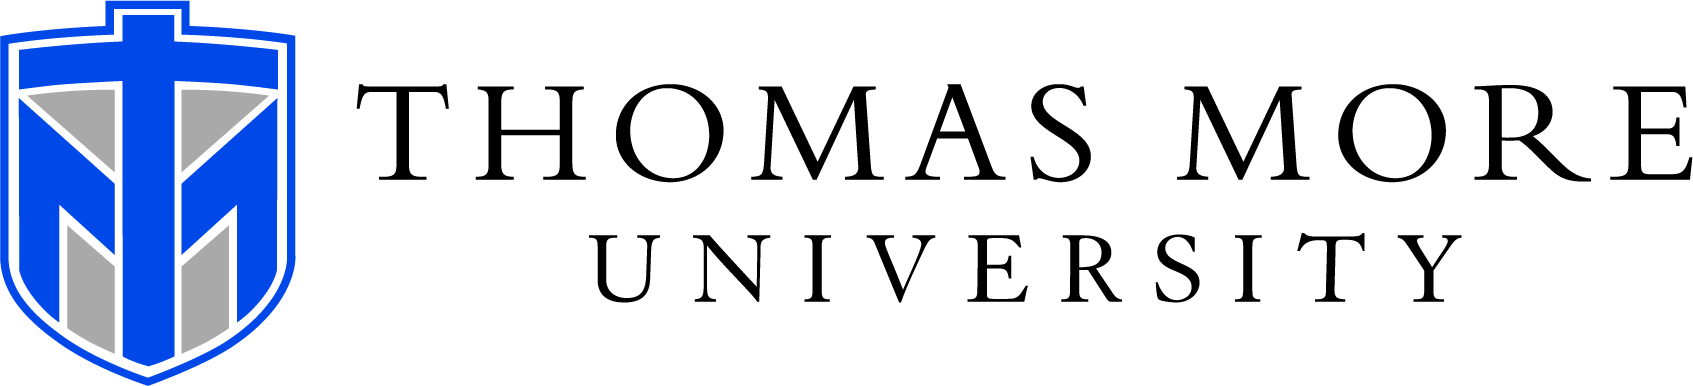 Thomas More unveils new University designation